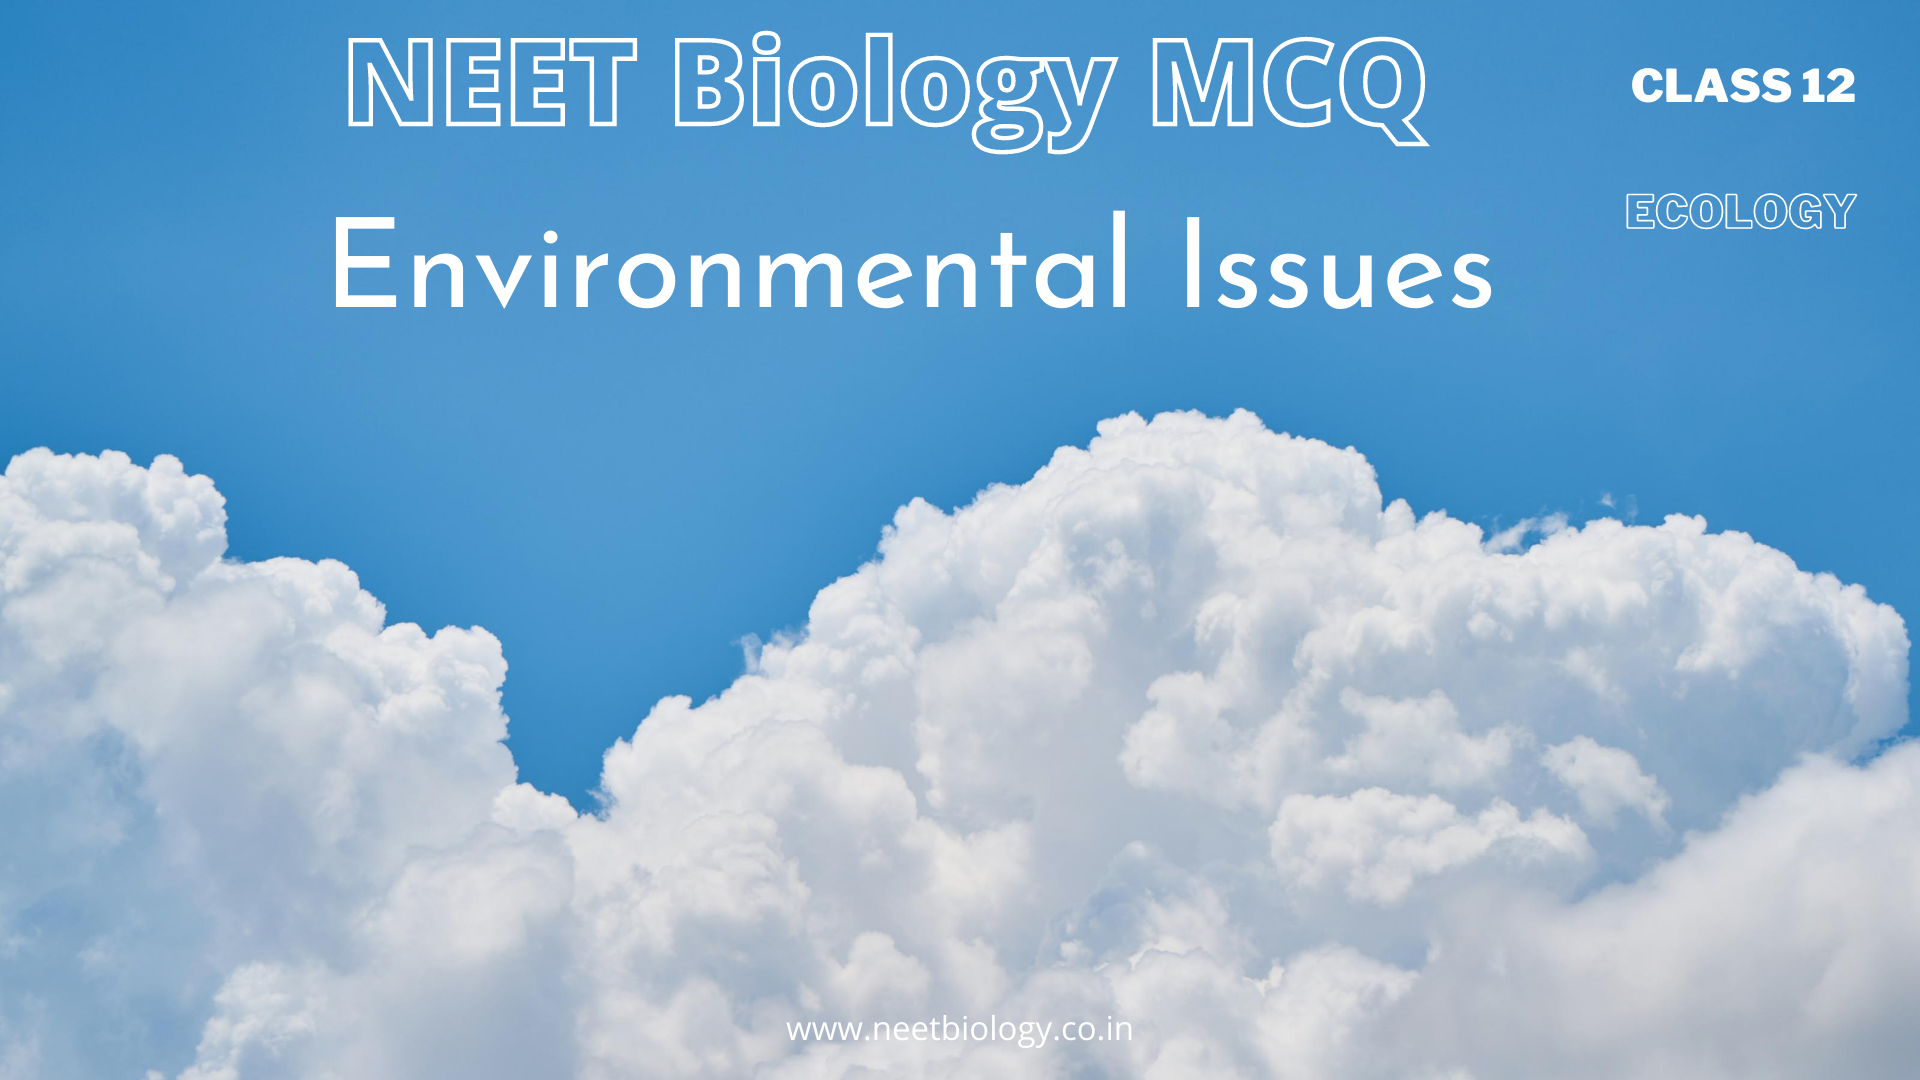 NEET Biology MCQ Class 12 Ecology  Environmental Issues Questions and Answers